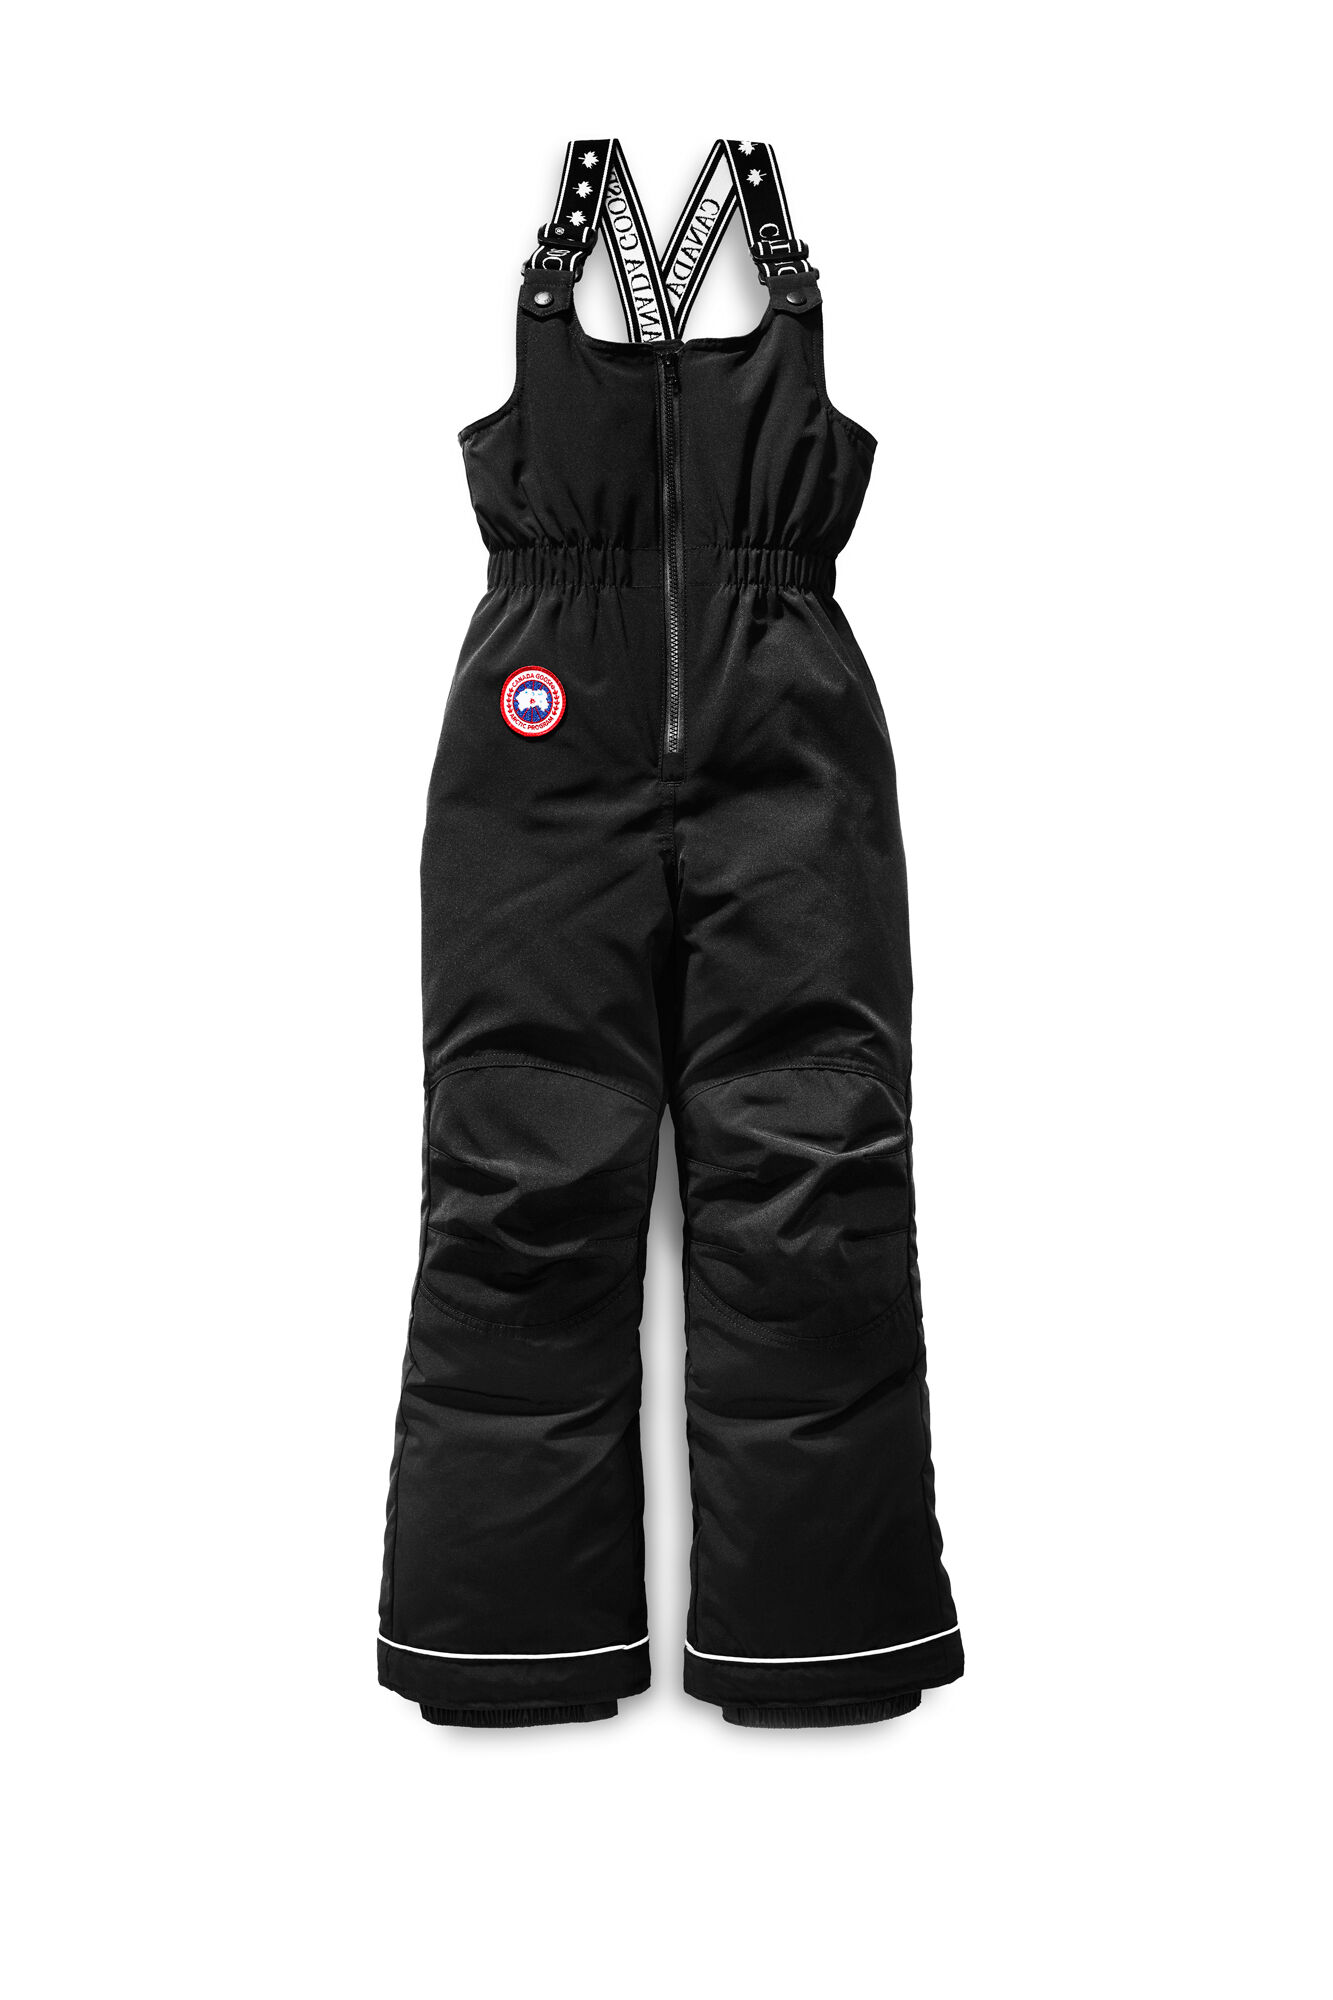 Canada Goose mens outlet price - Youth Outerwear | Parkas Pants Gloves | Canada Goose?